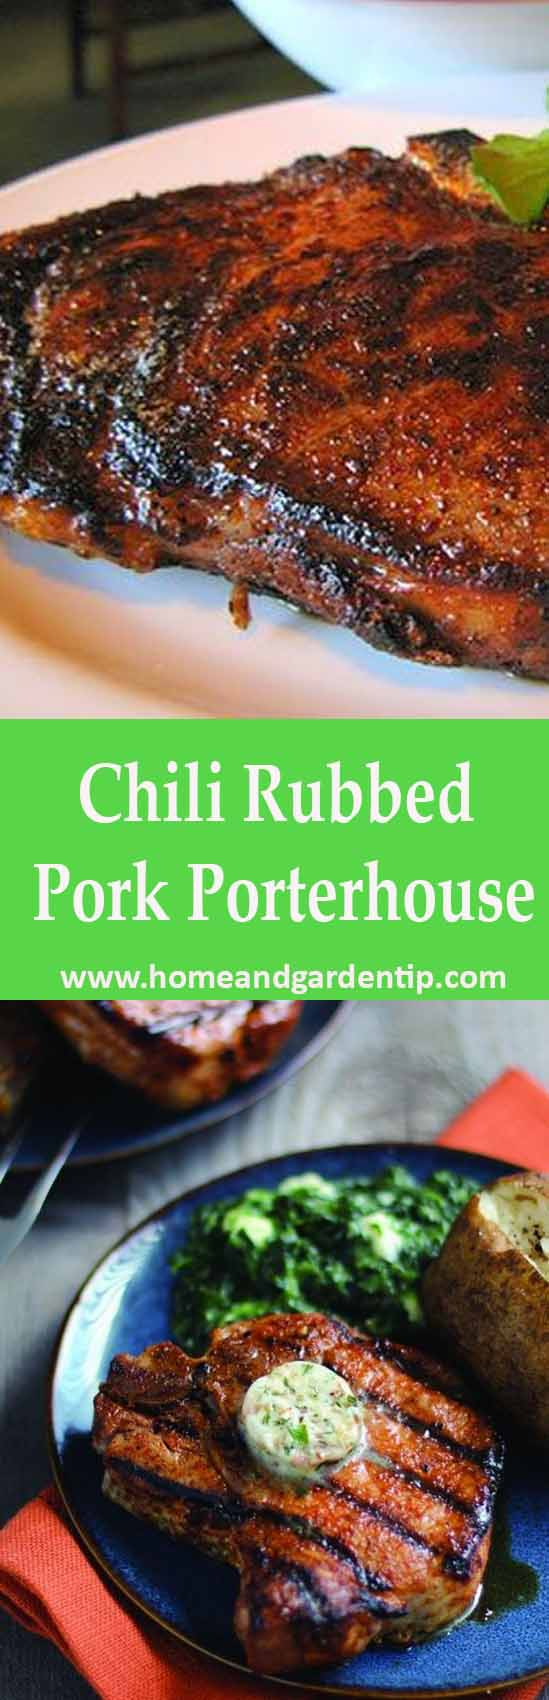 You are currently viewing Chili Rubbed Pork Porterhouse   Home and Garden Tip